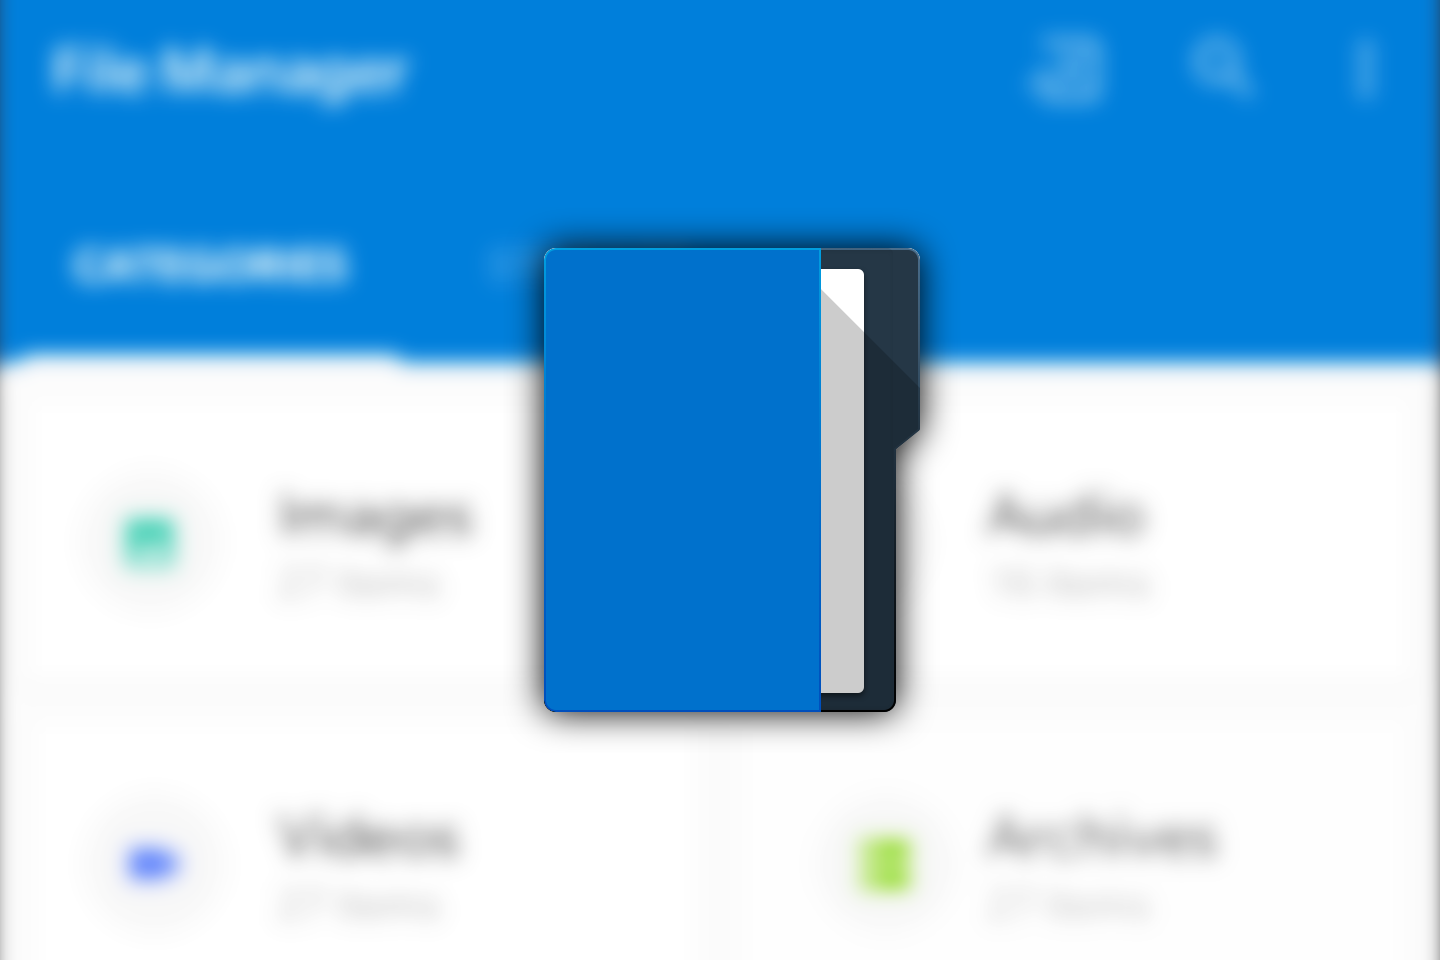 Oneplus Publishes Its File Manager On The Play Store For Faster Updates